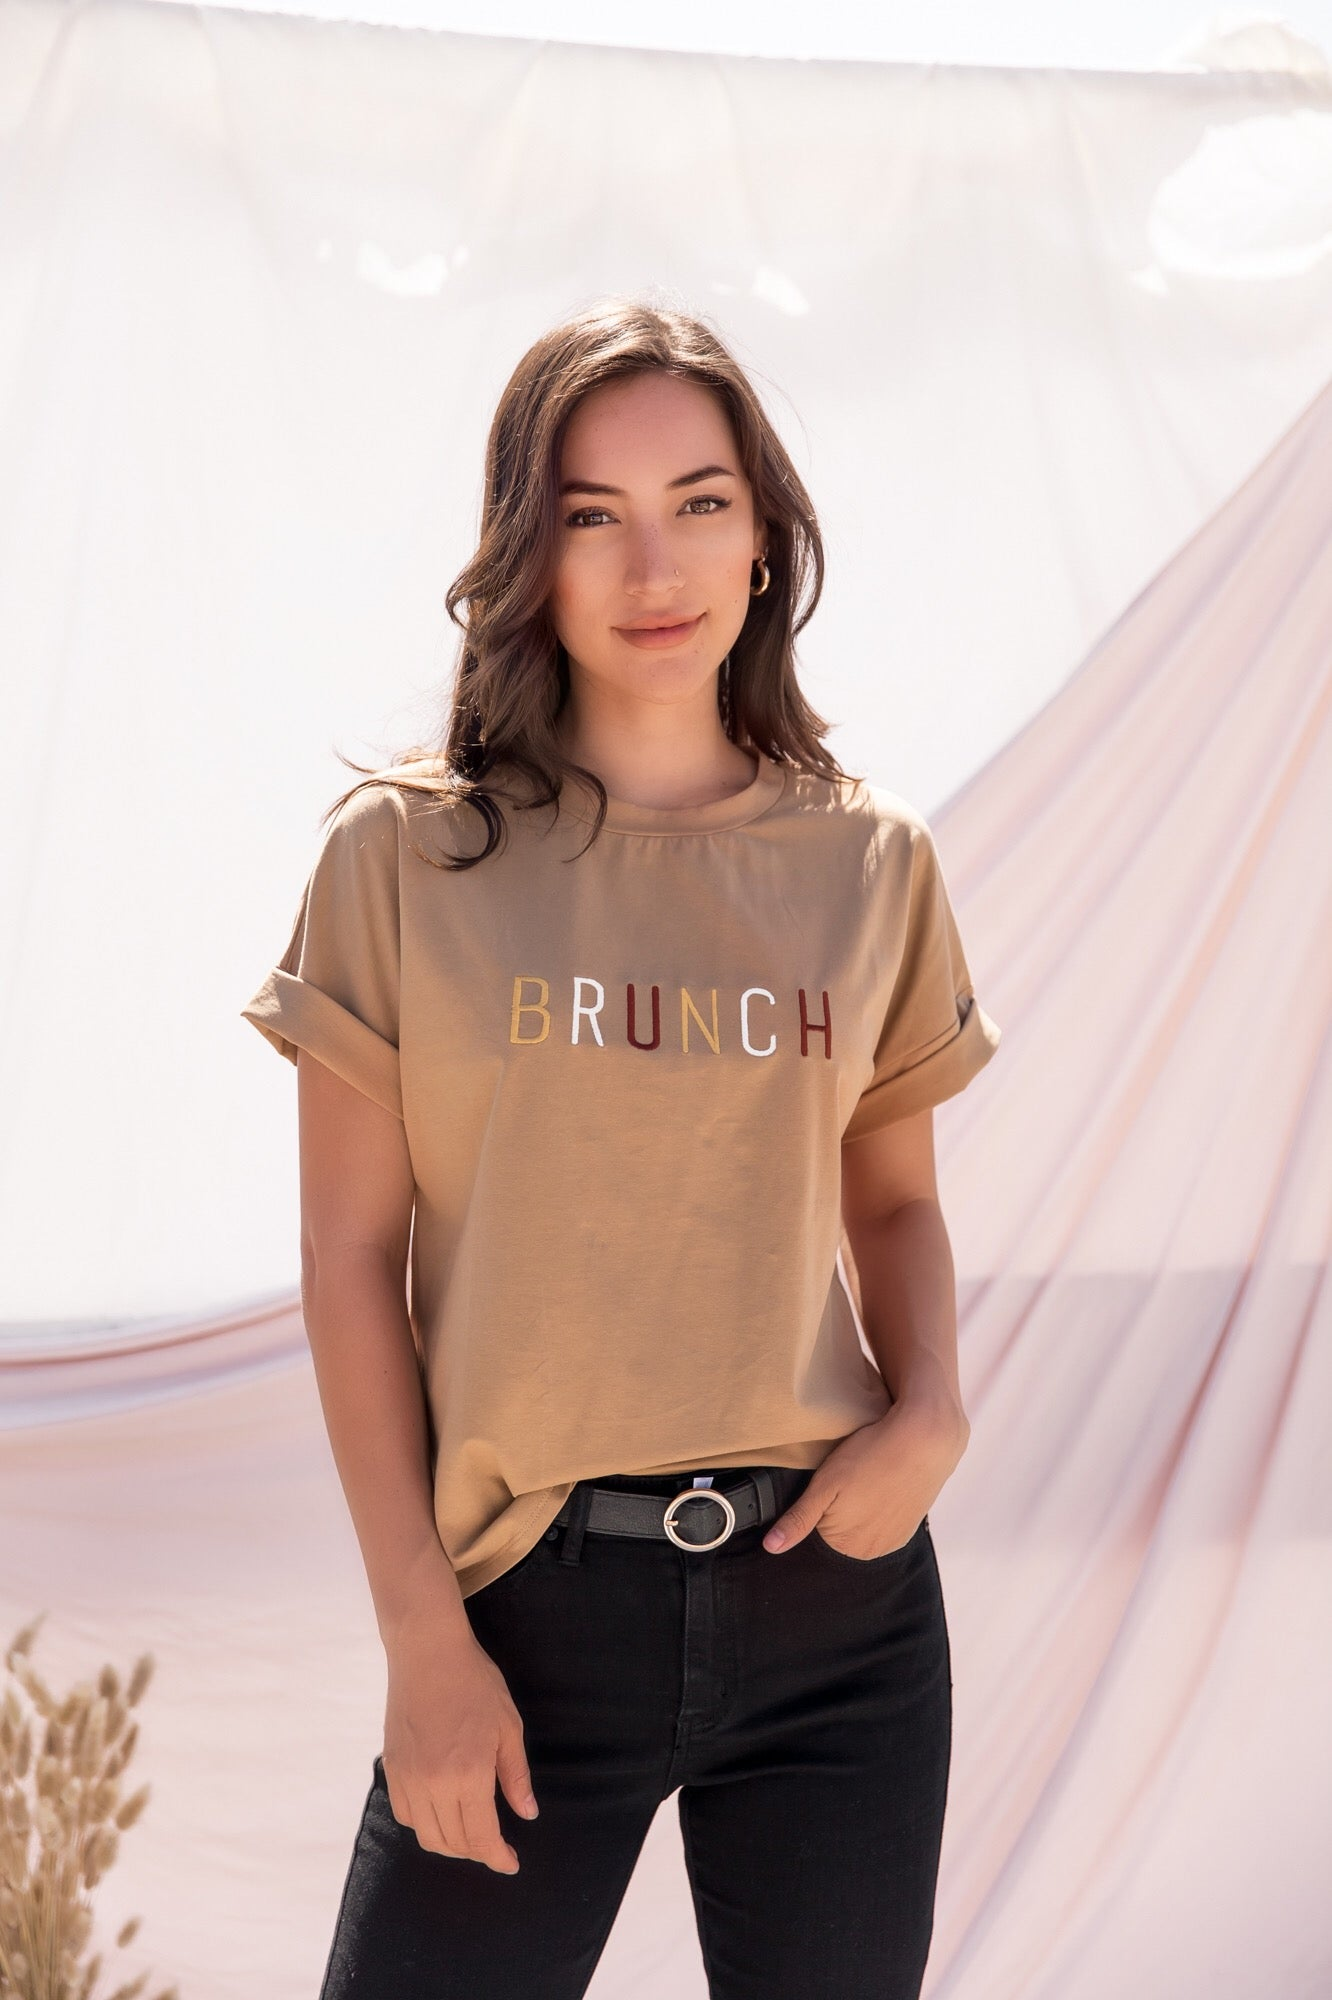 Color Brunch Tee